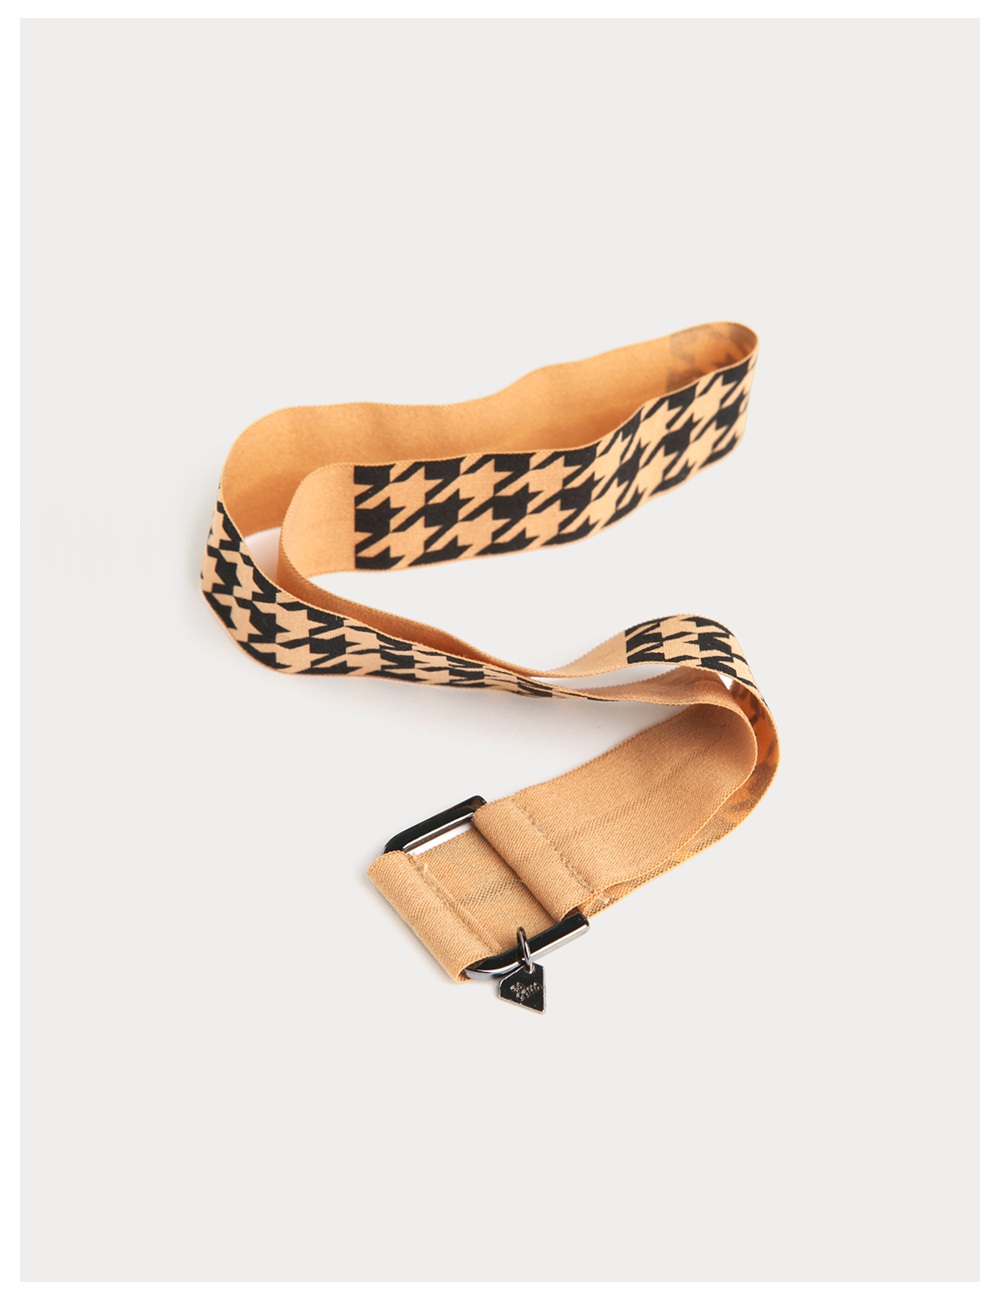 Hounds tooth Check Hair tie Band / Beige